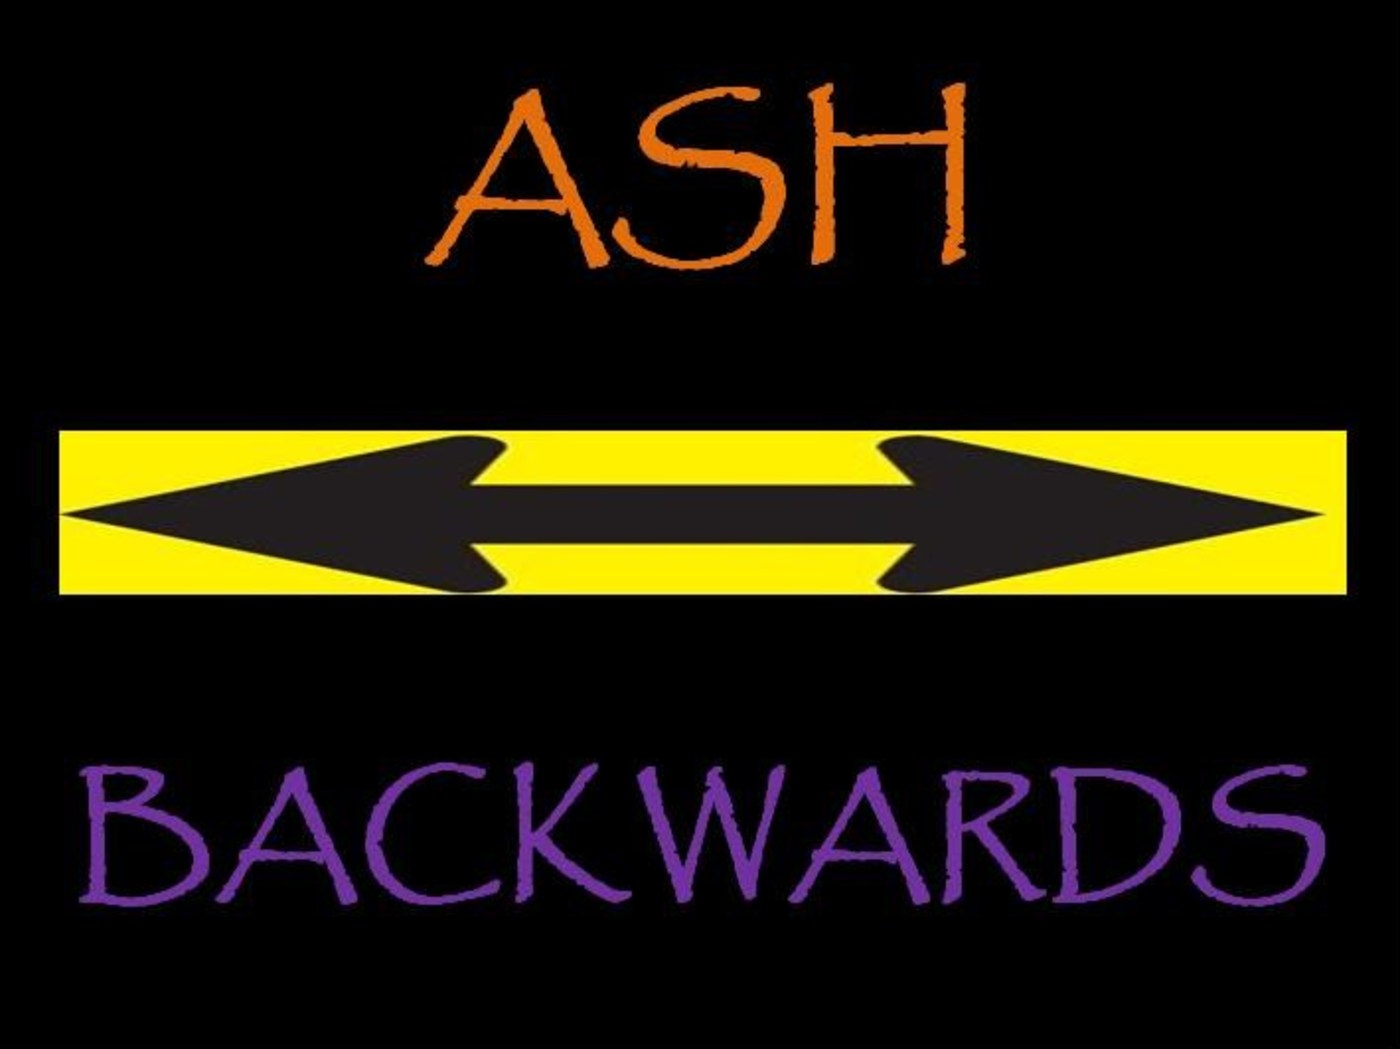 Ash Backwards